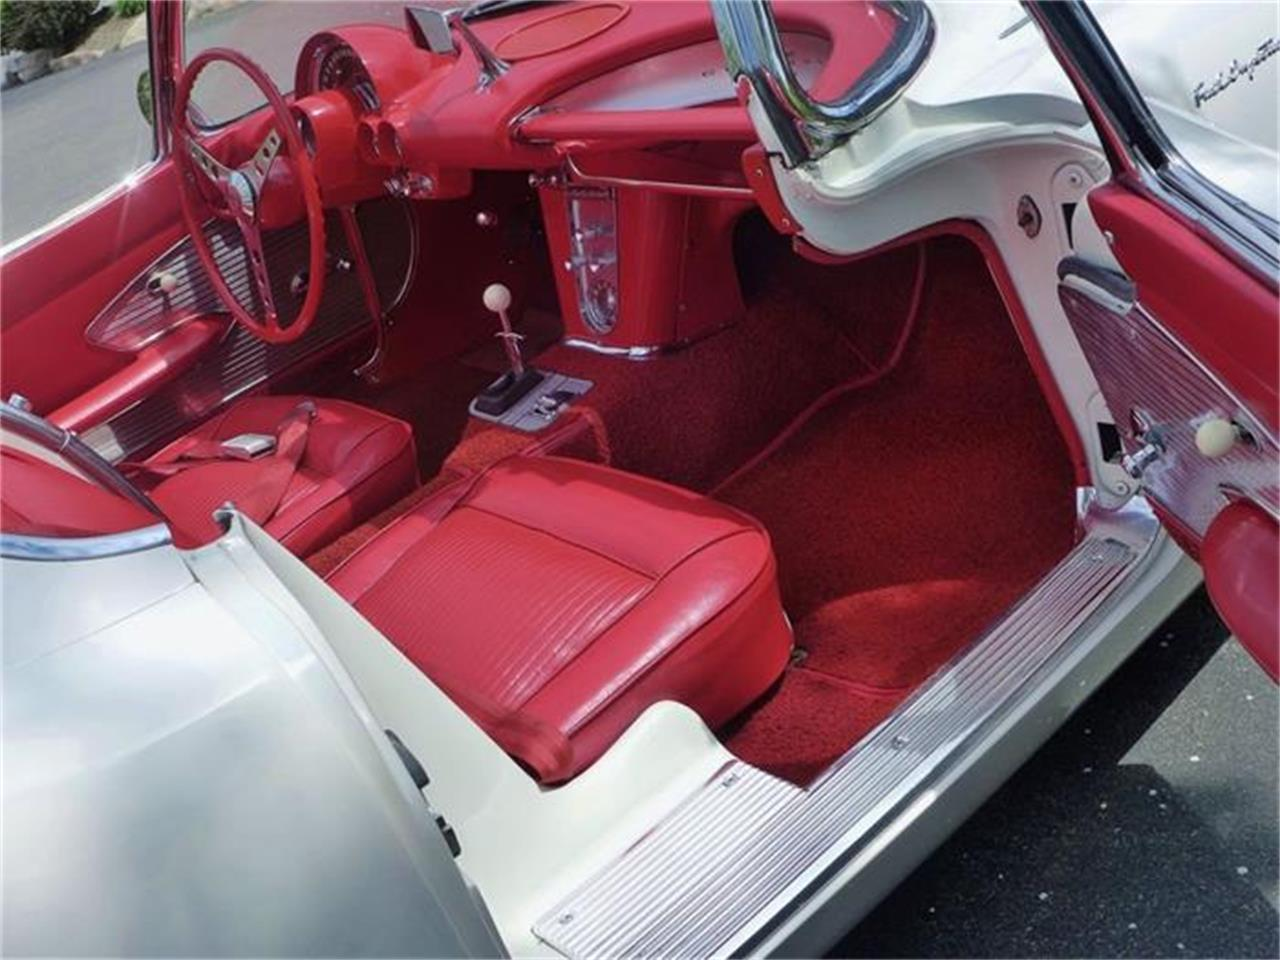 Large Picture of 1961 Chevrolet Corvette located in Old Forge Pennsylvania - $99,500.00 Offered by Coffee's Sports and Classics - FBYK